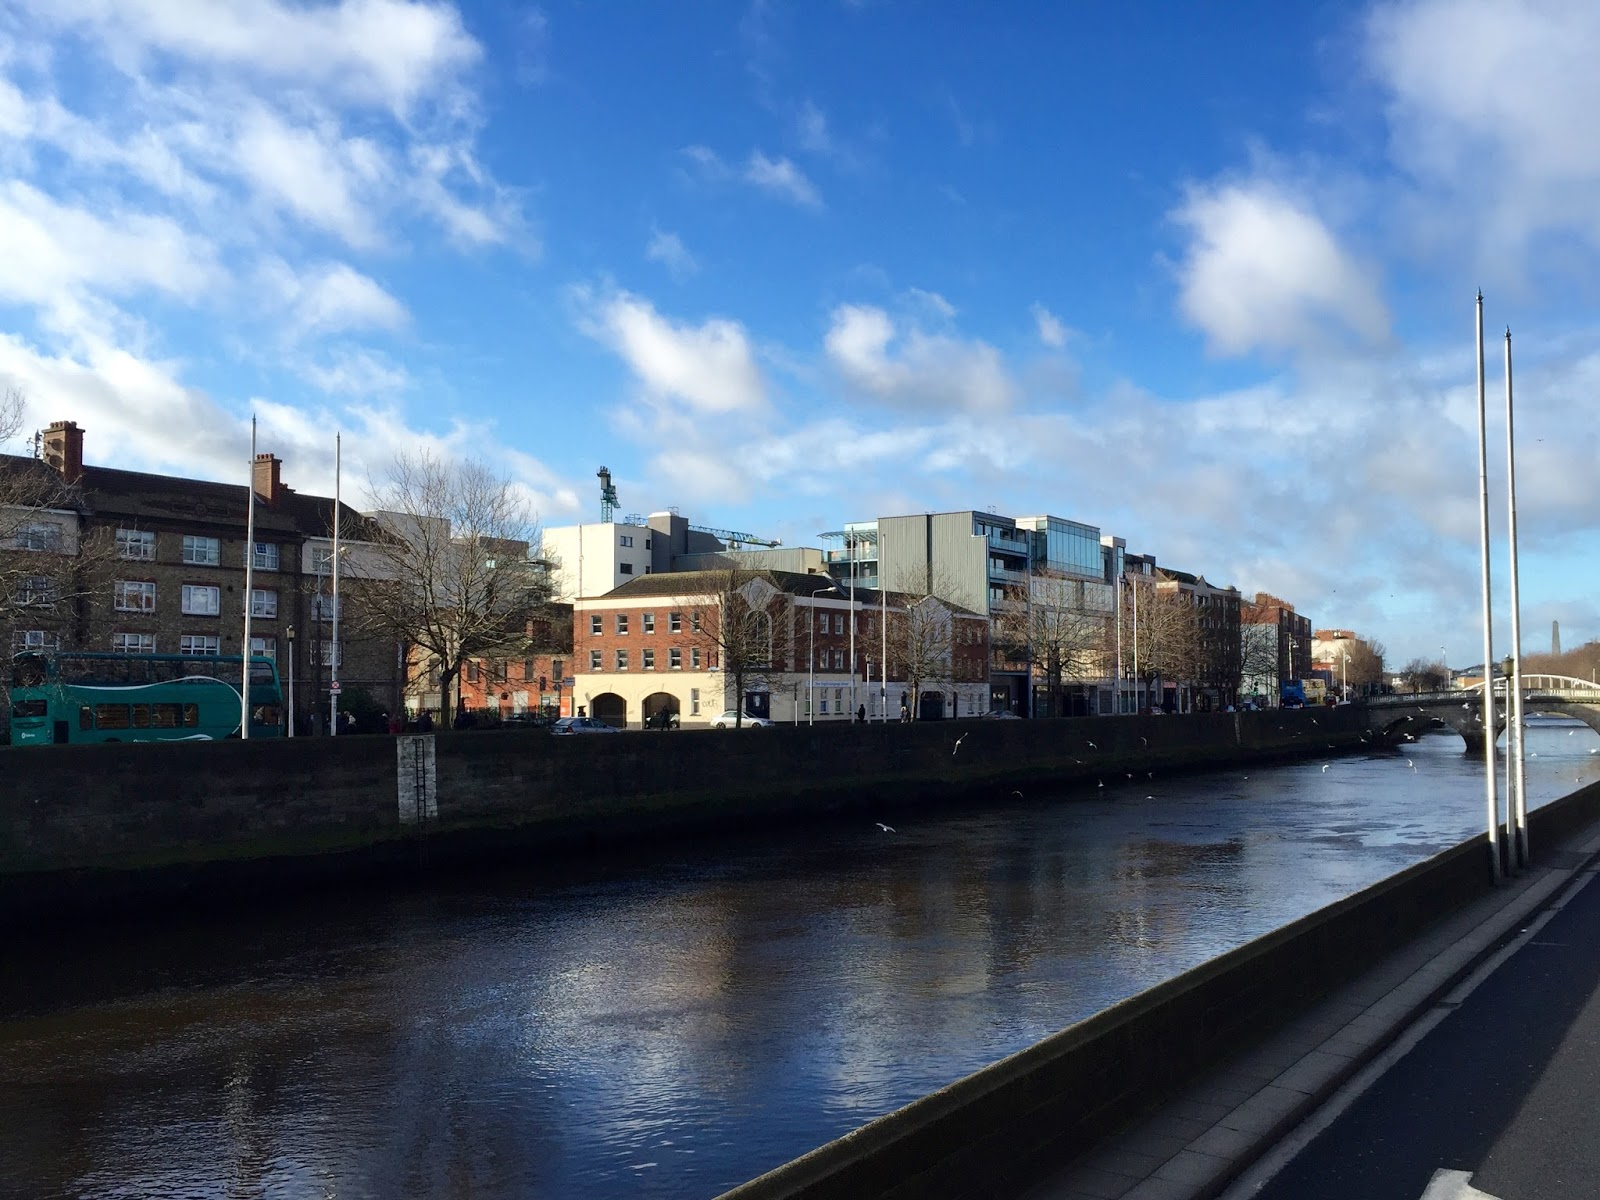 WEEKEND W DUBLINIE - CO, JAK I ZA ILE